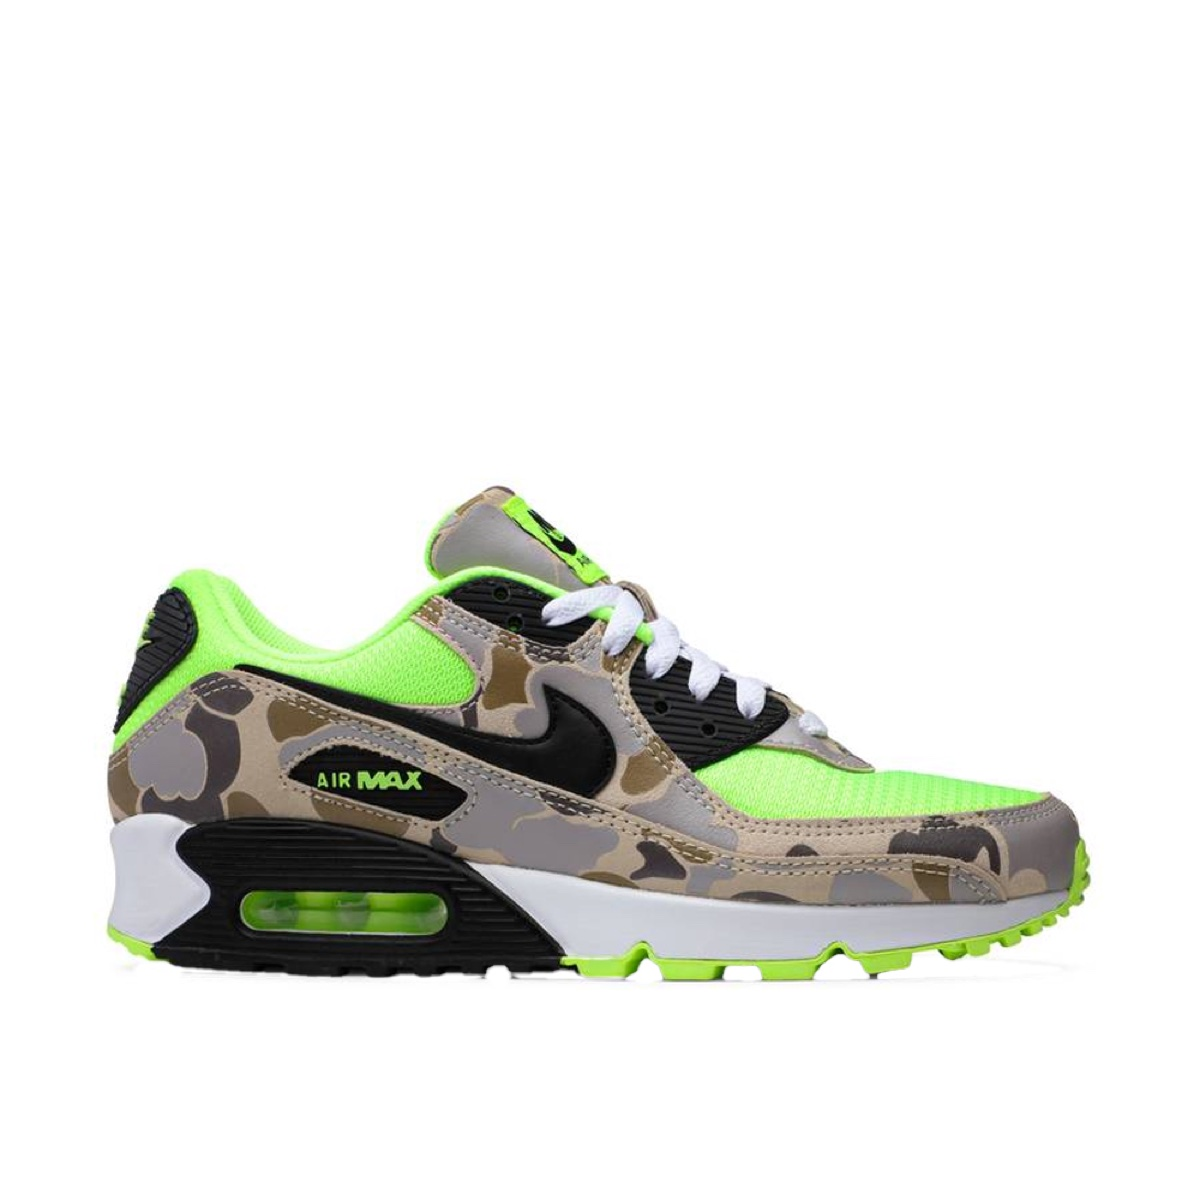 Nike Air Max 90 Reserve Green Camo